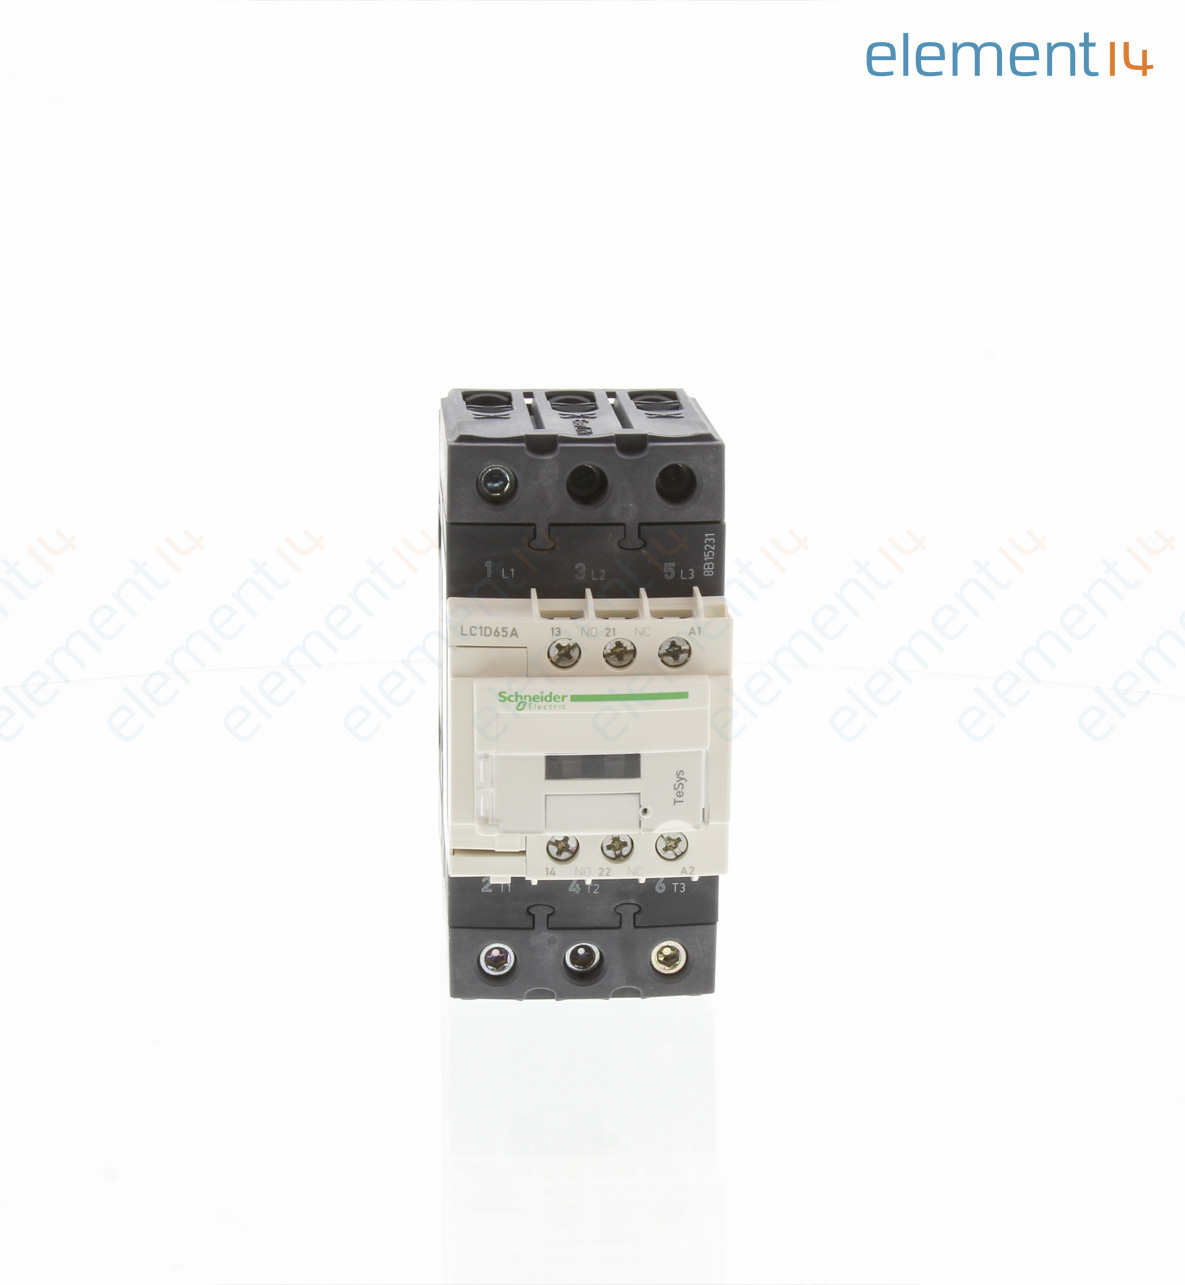 hight resolution of contactor tesys d contactor 65 a din rail panel 690 vac 3pst no 3 pole 50 hp